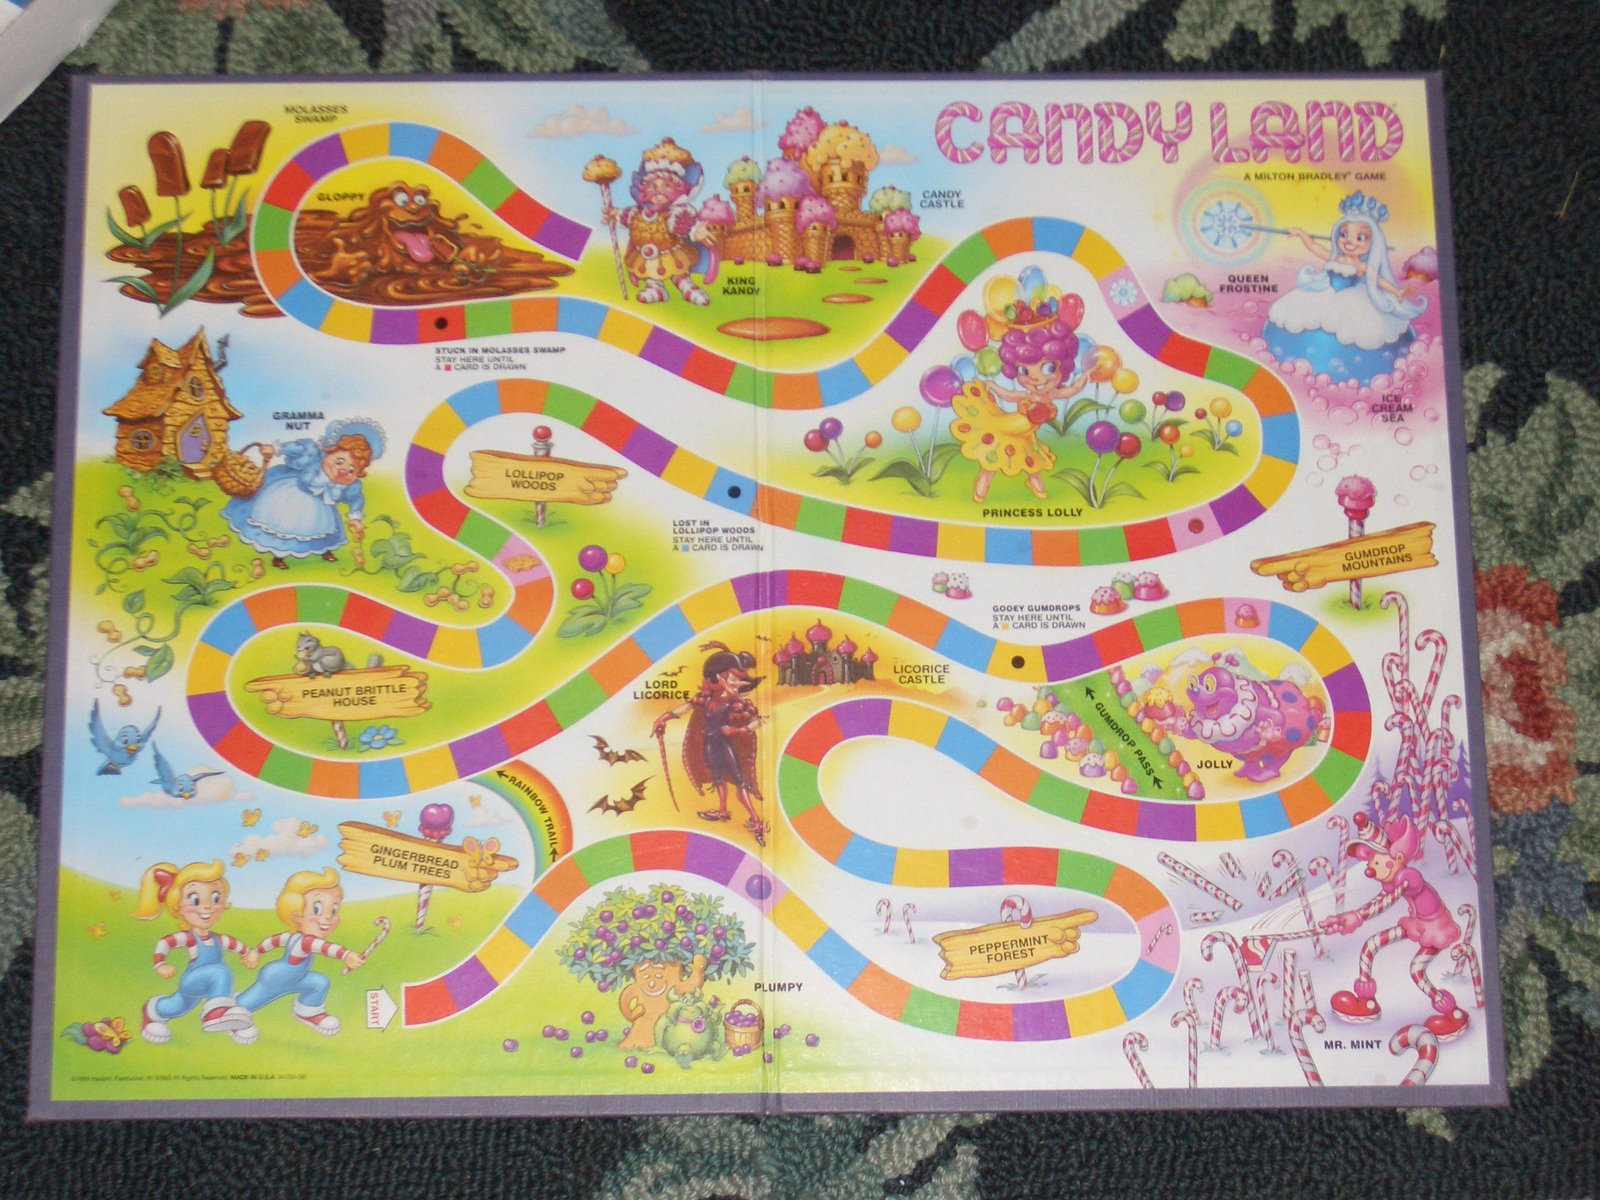 Kicked out of Candyland: The Mysterious Disappearance of Plumpy